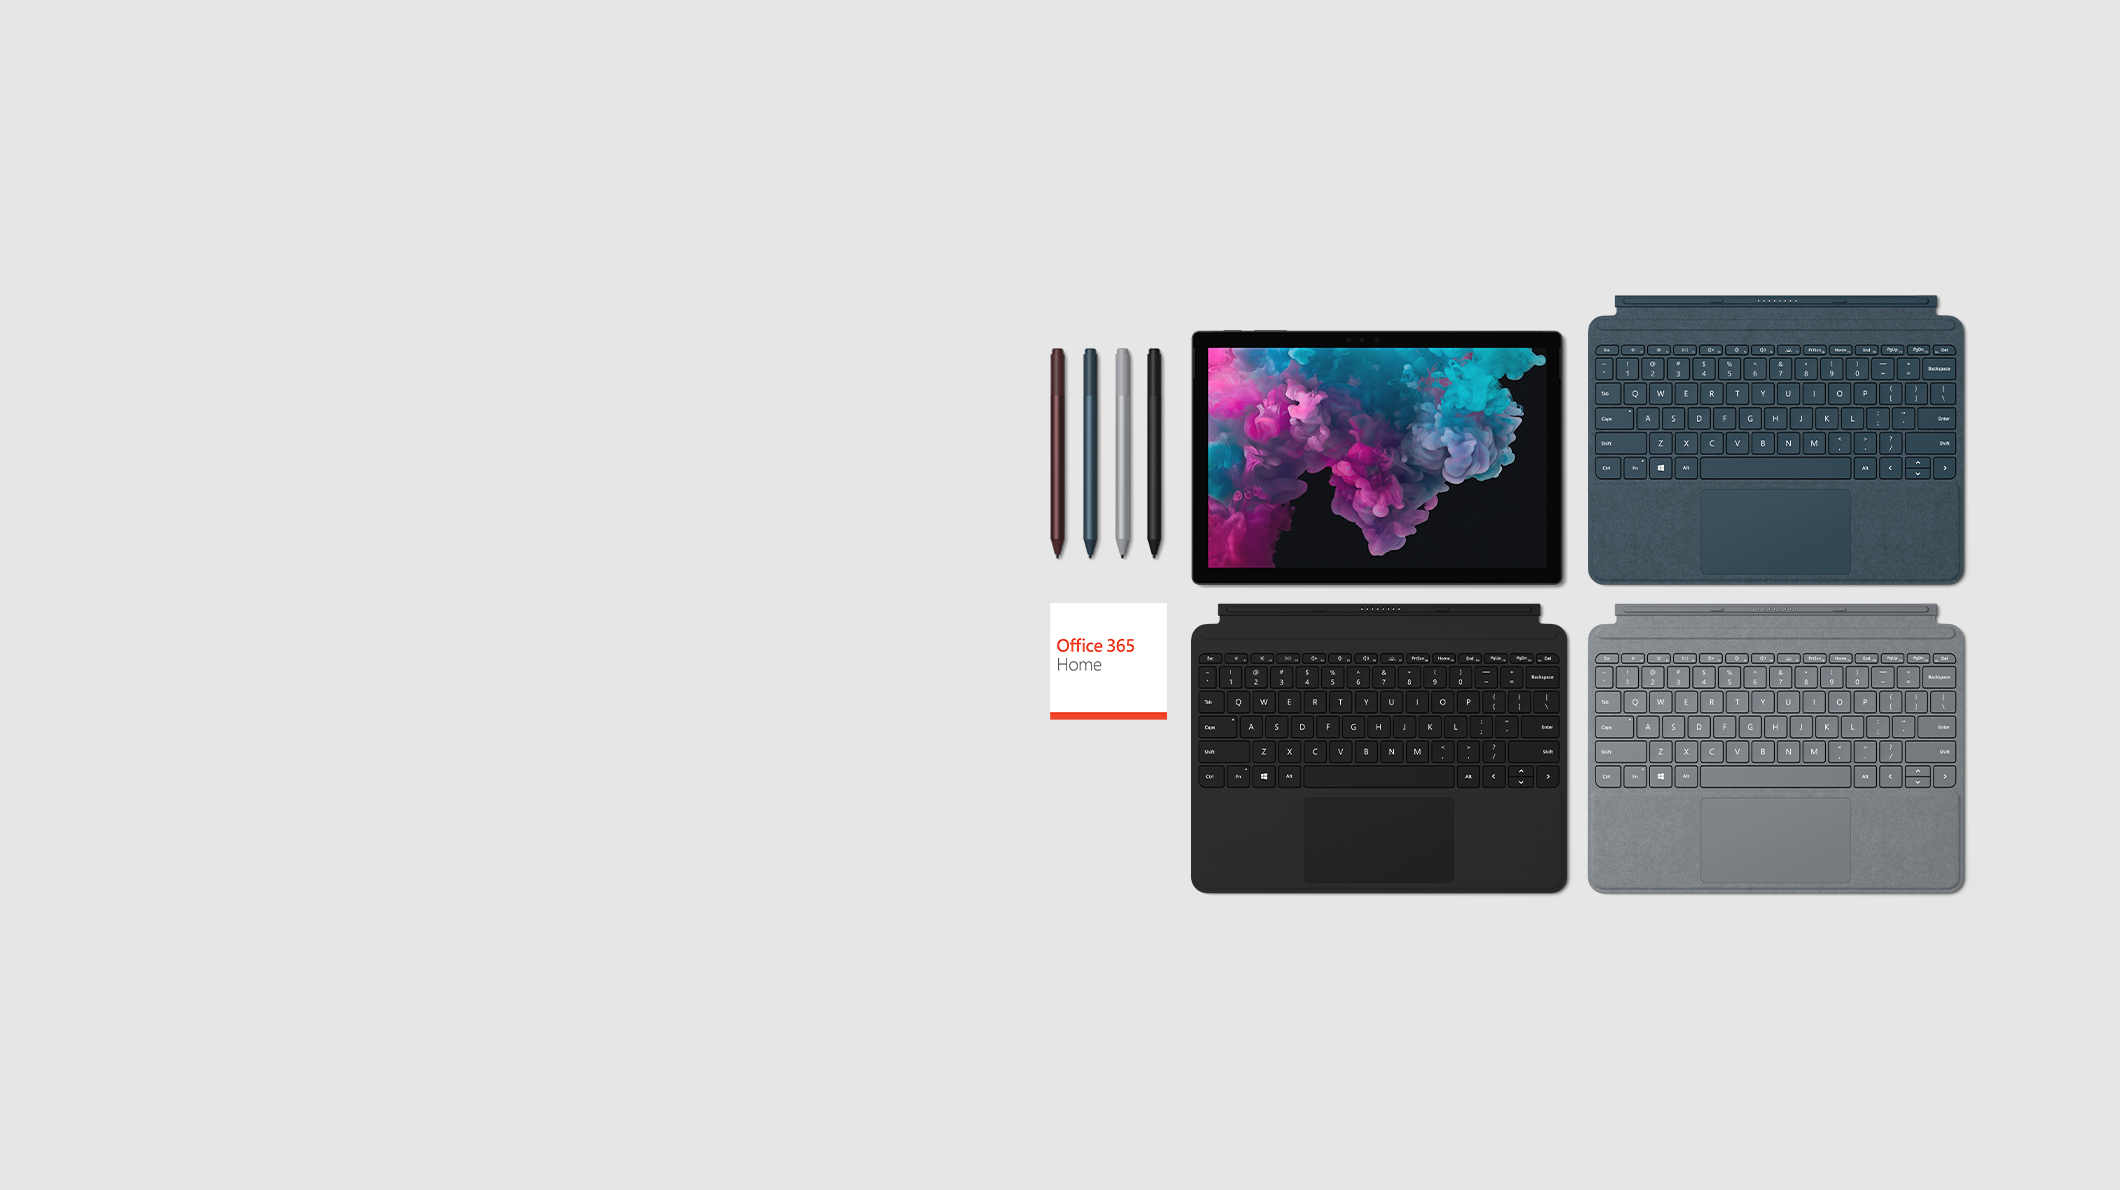 Surface Pro 6 + Funda con teclado + Office 365 + Lápiz para Surface